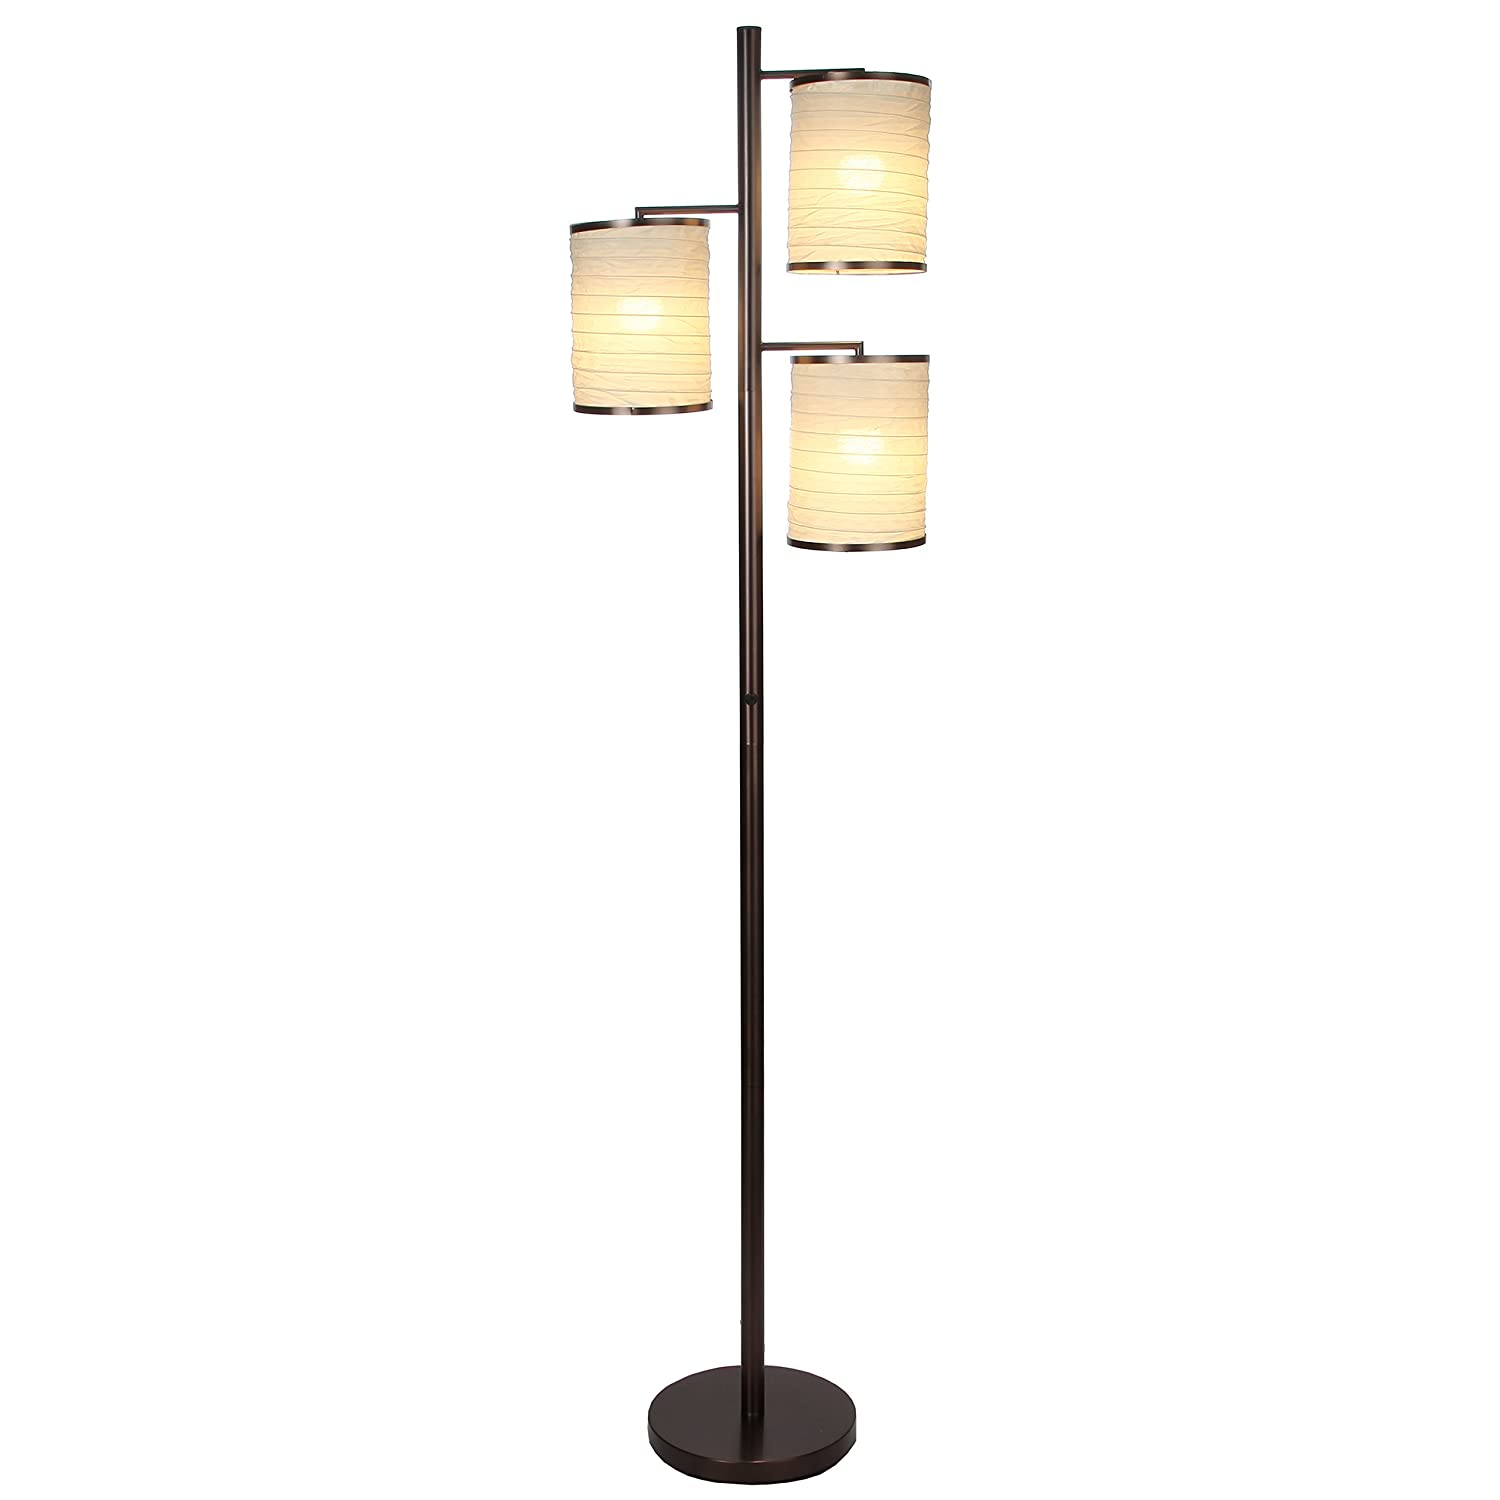 pavillion l dimmable lamps brighton bronze art lamp floor fine